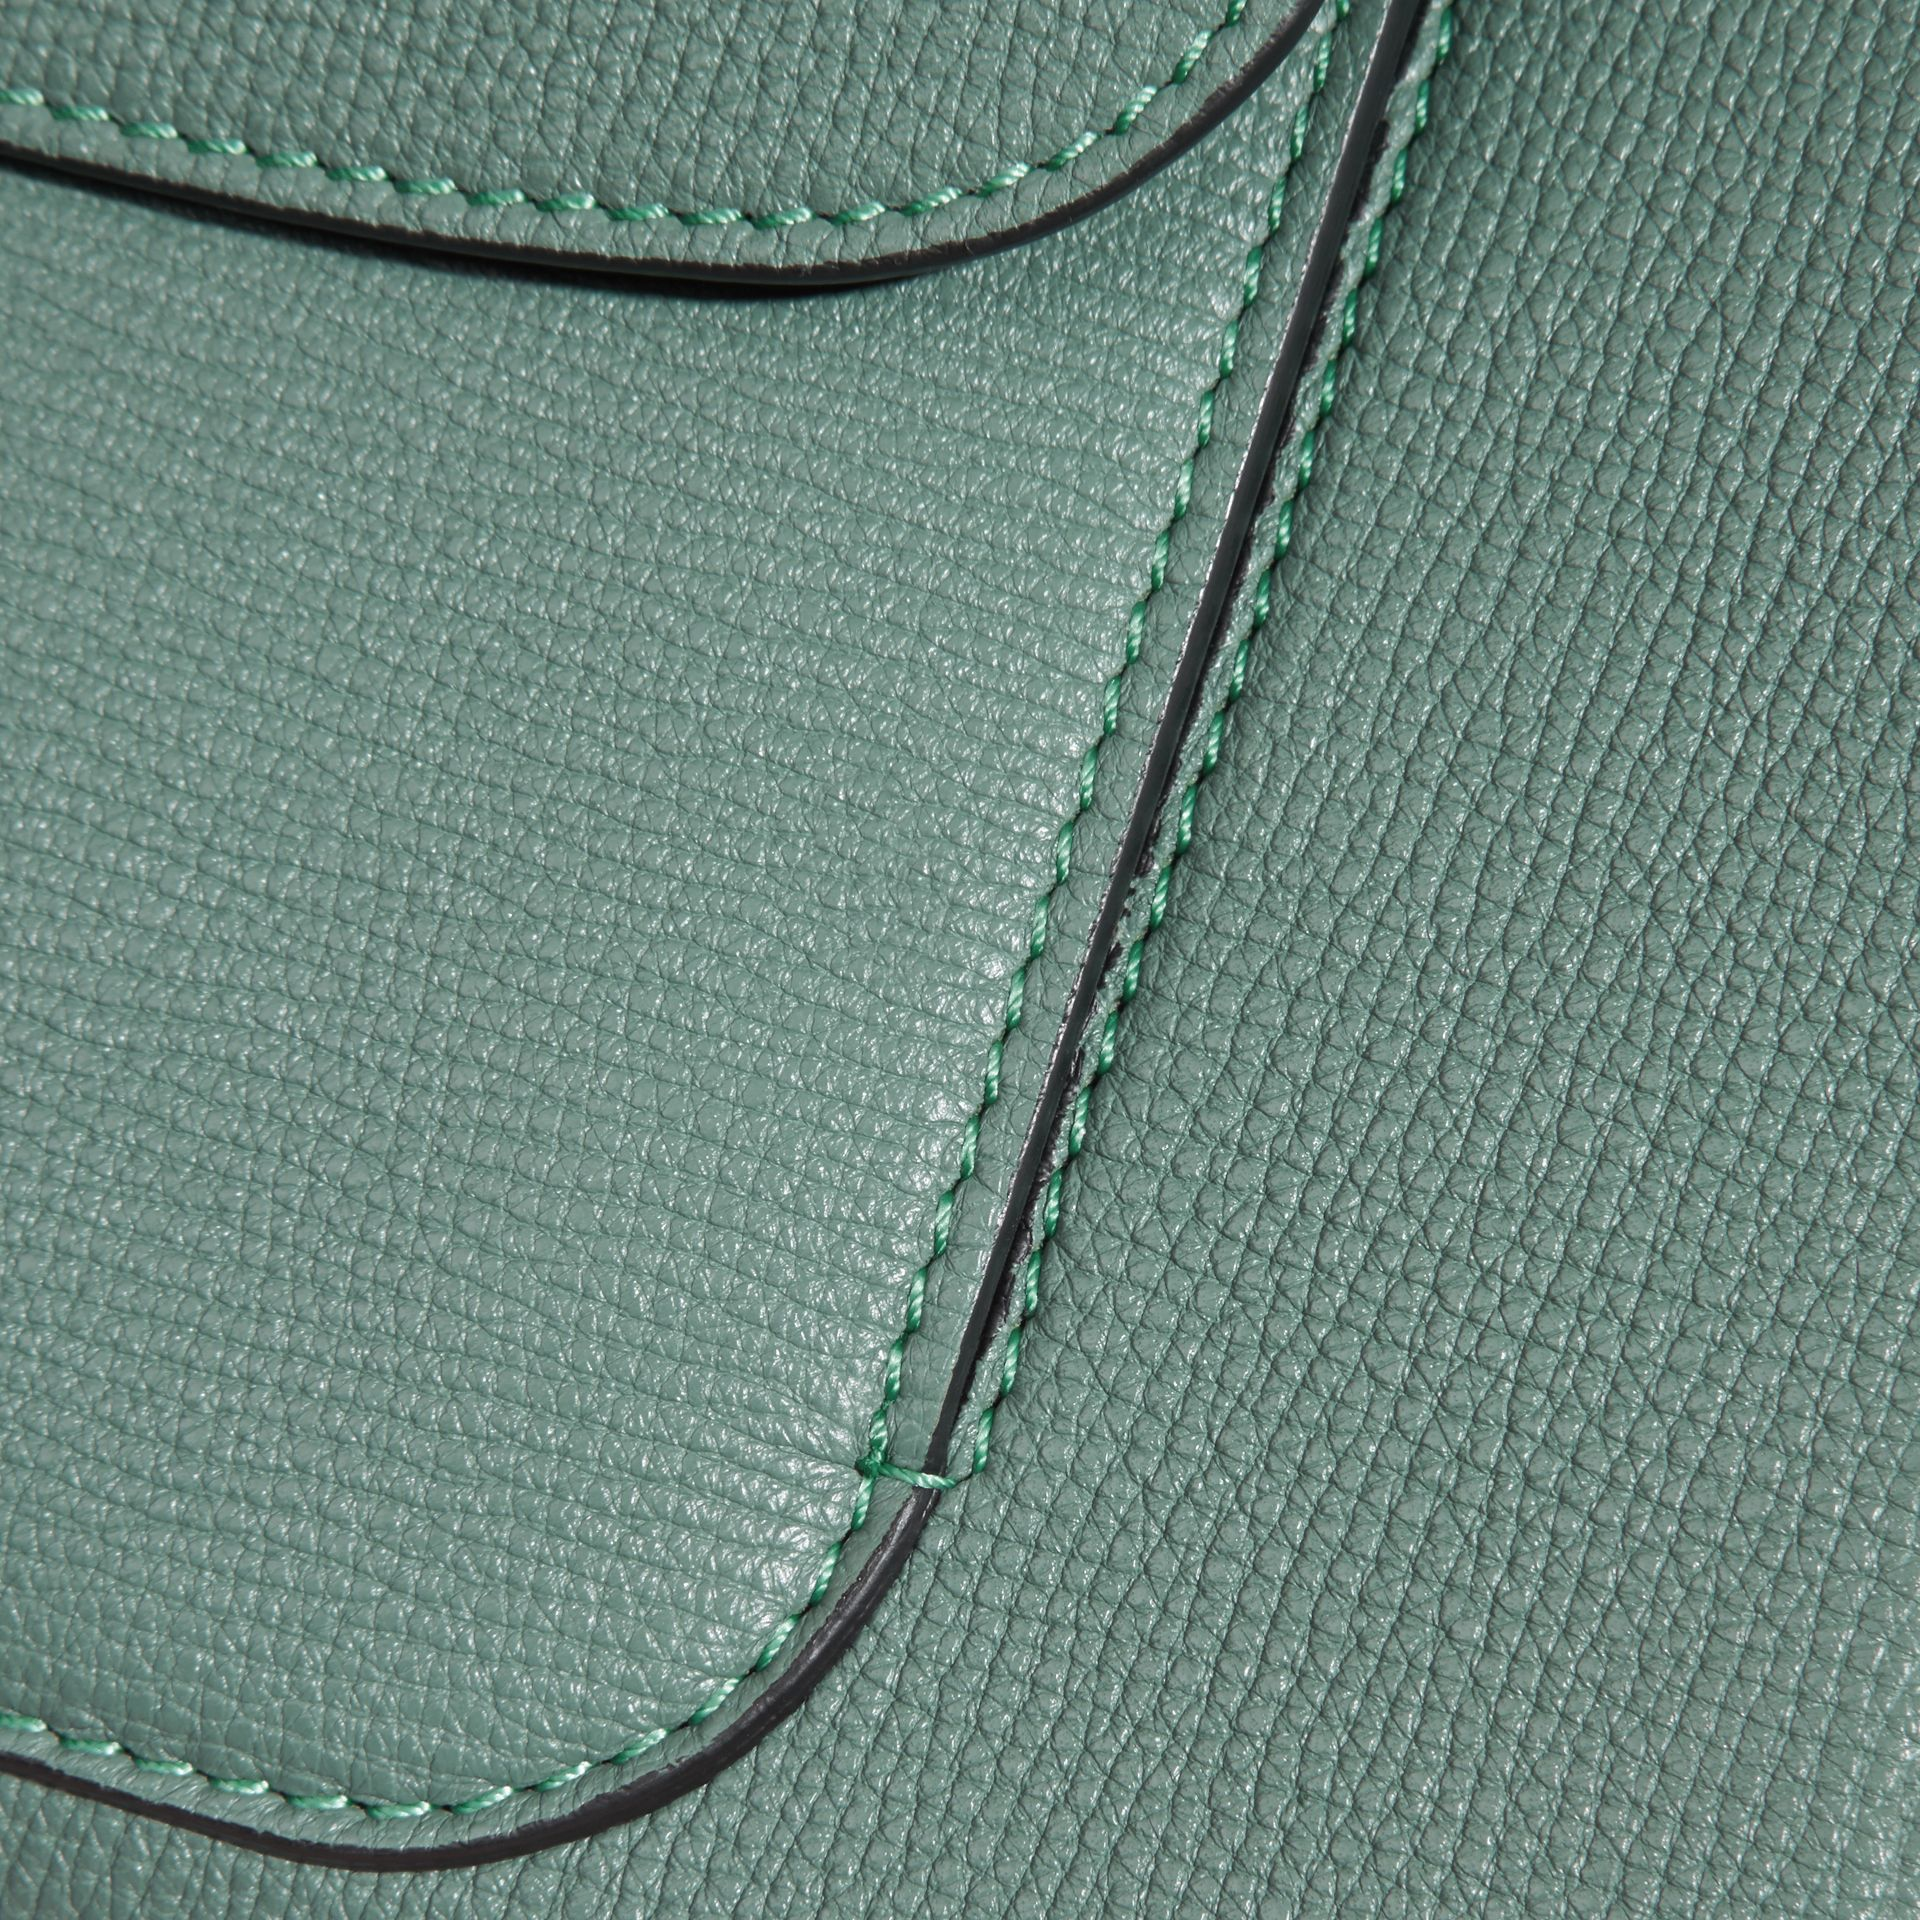 Smokey green The Saddle Clutch in Grainy Bonded Leather Smokey Green - gallery image 2